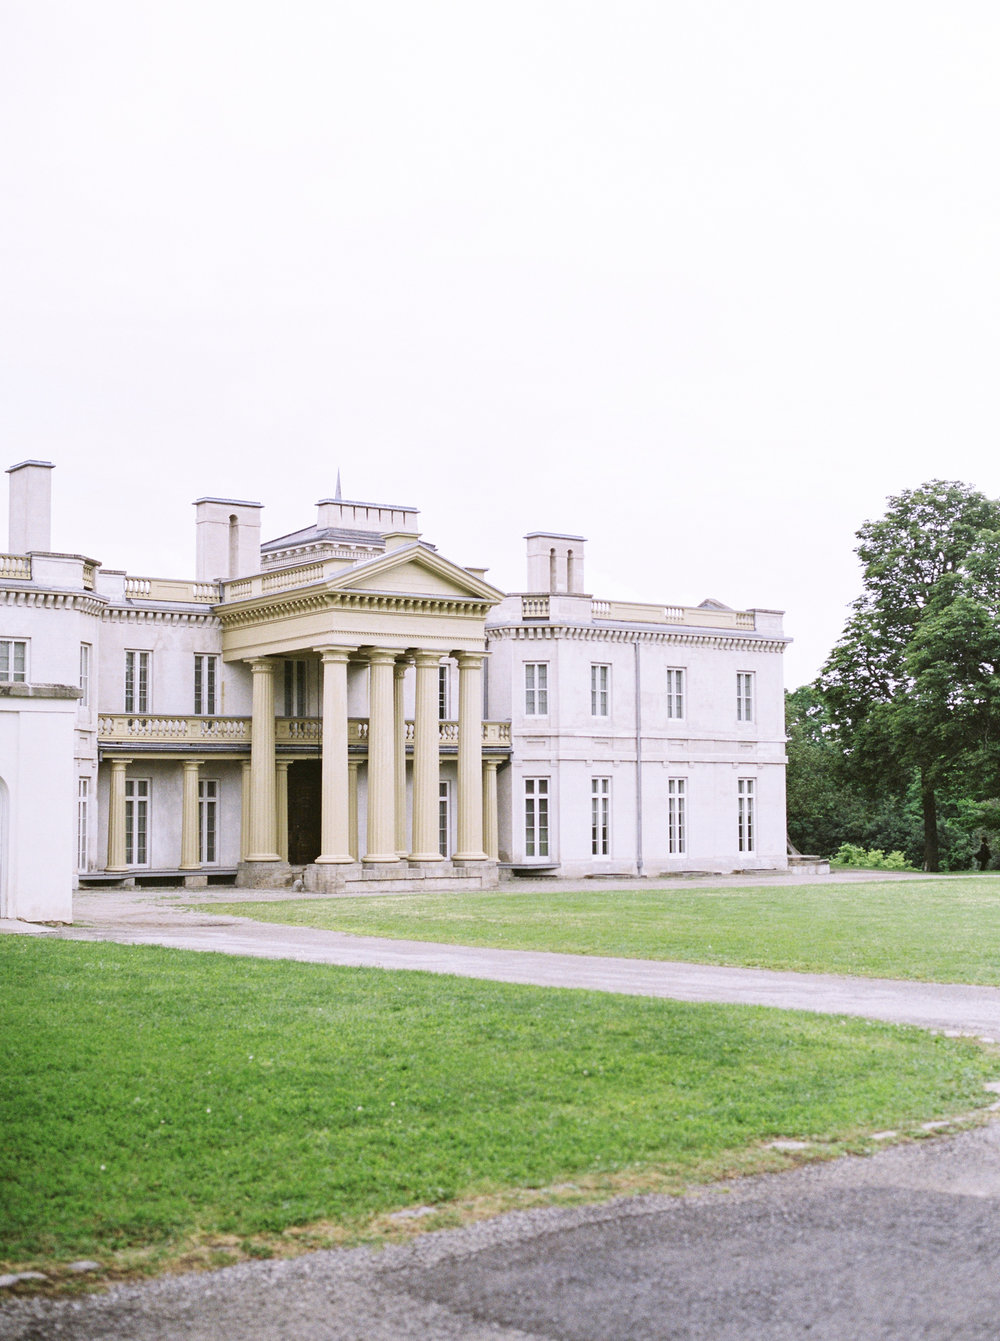 dundurn castle in ontario